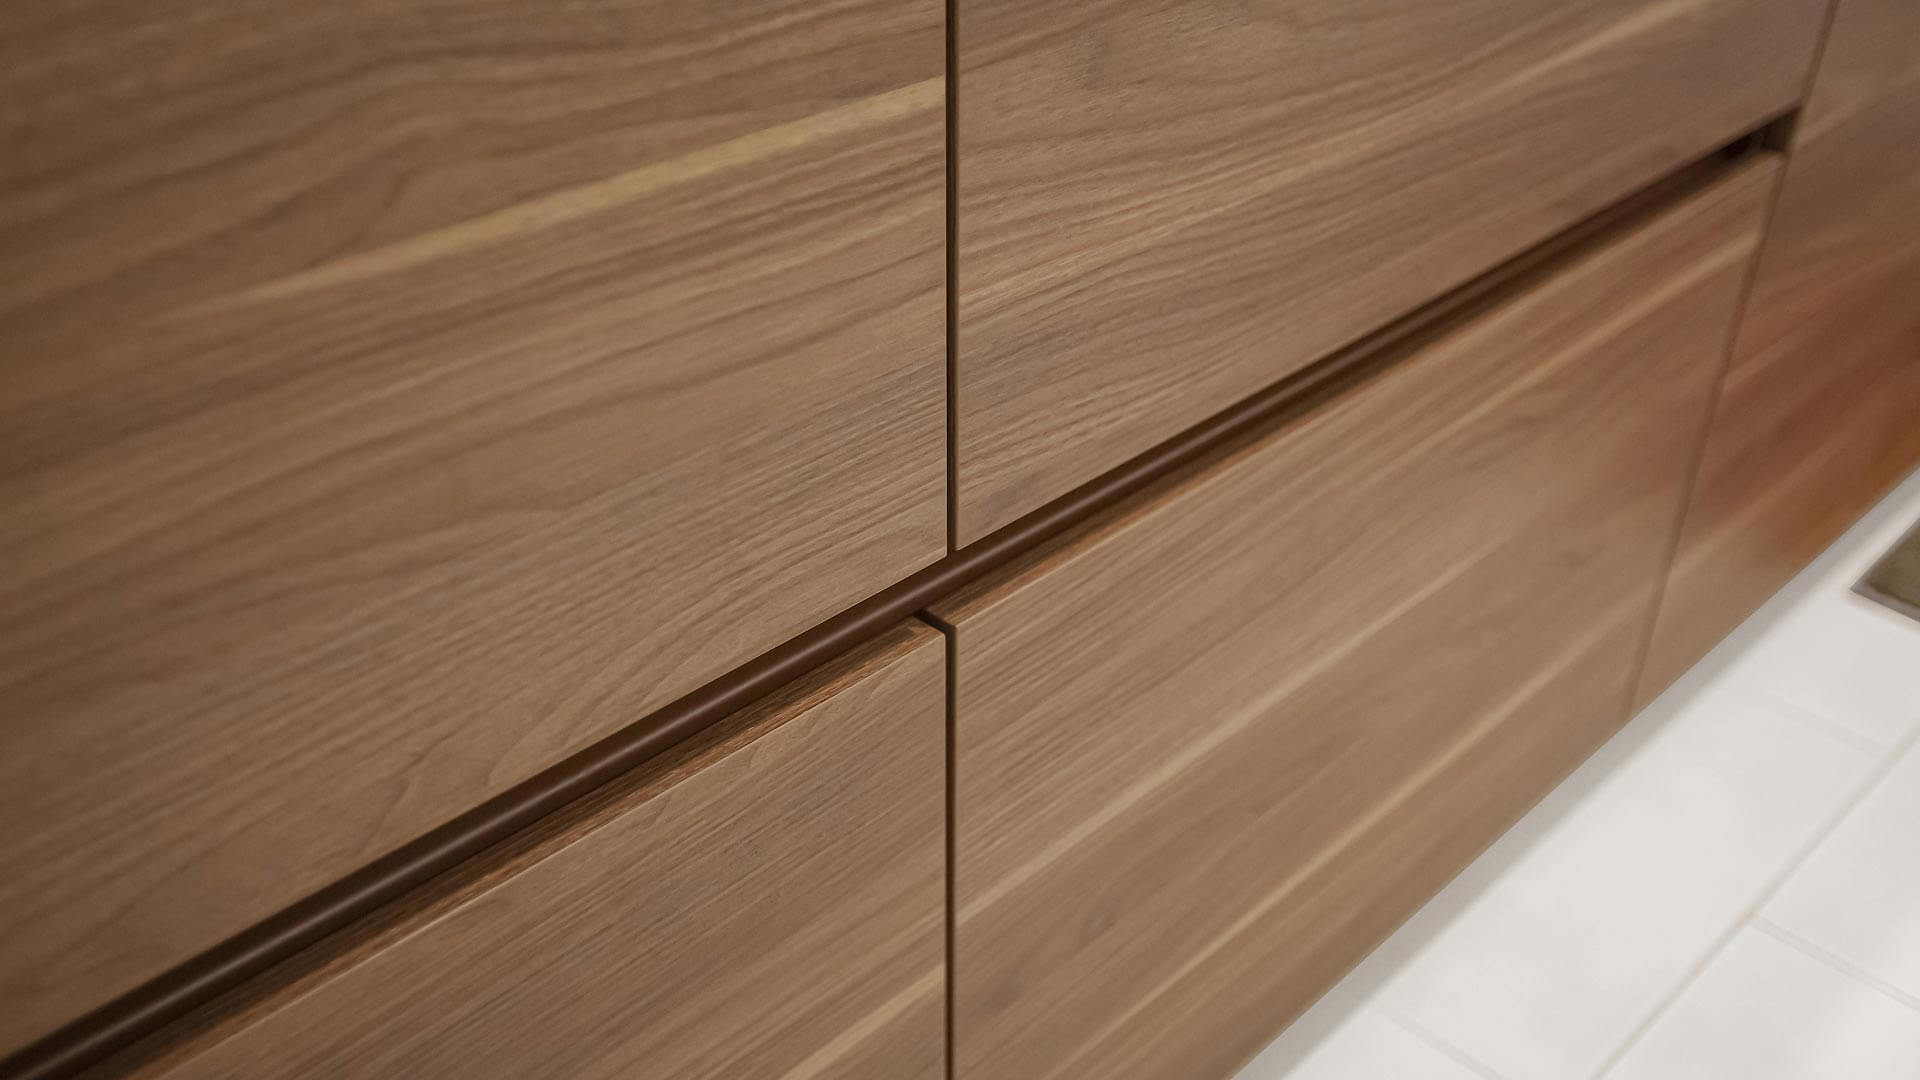 Kitchen cabinet bases comprise wood veneer clad drawers with integrated drawer pull detail - Bridge House - Fenneville, Michigan - Lake Michigan